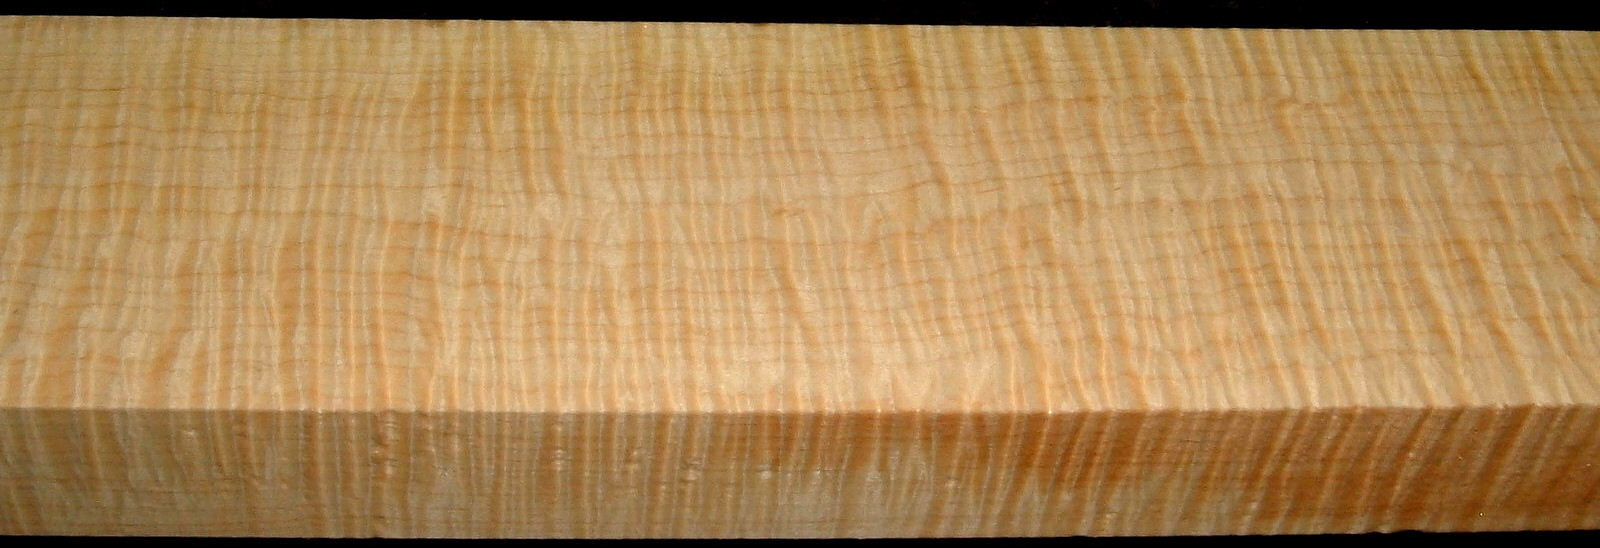 QS2001-9, 1-1/2x3-1/2x32, Quartersawn Curly Maple